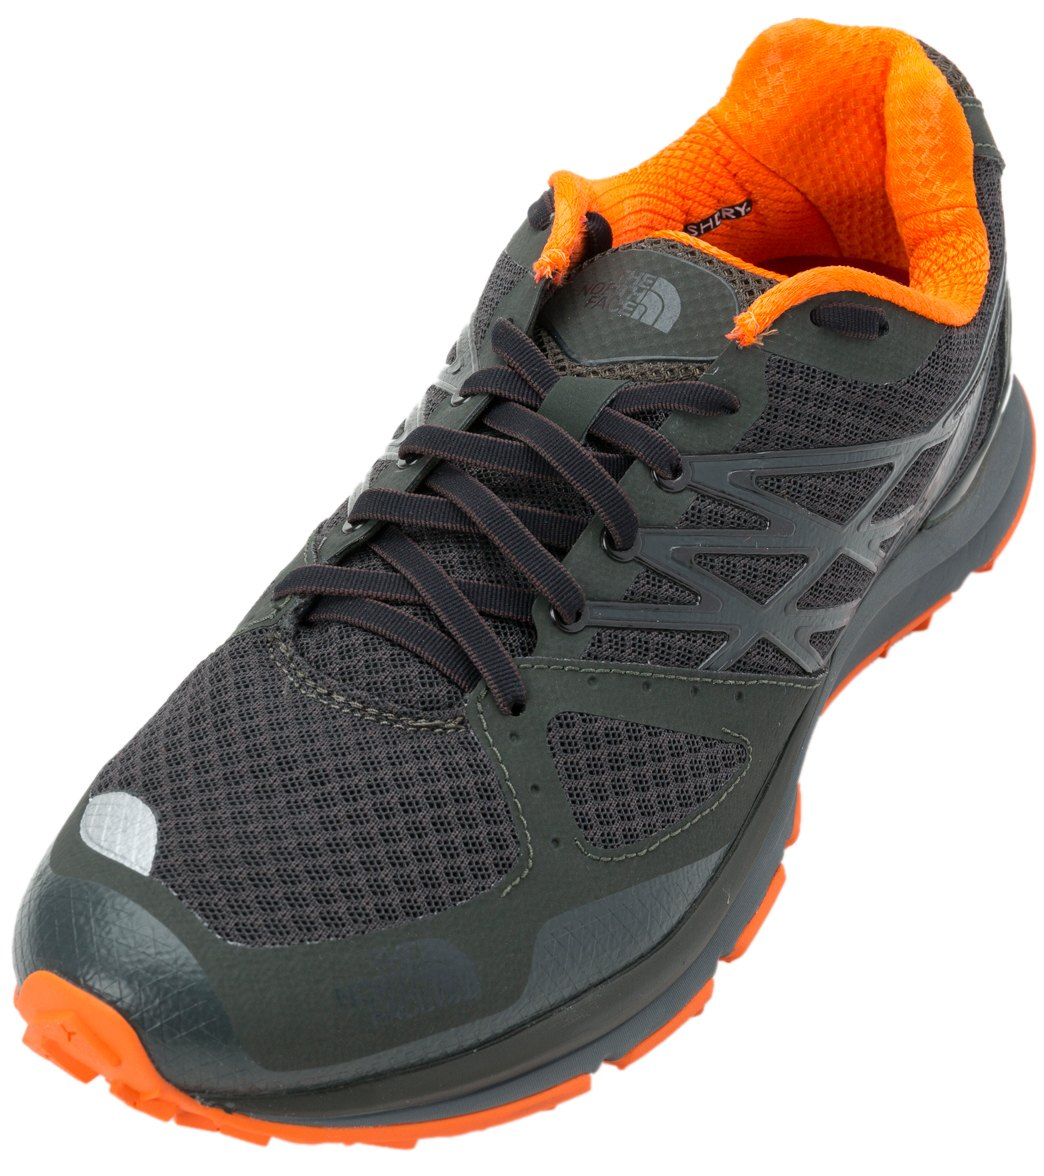 tnf trail shoes